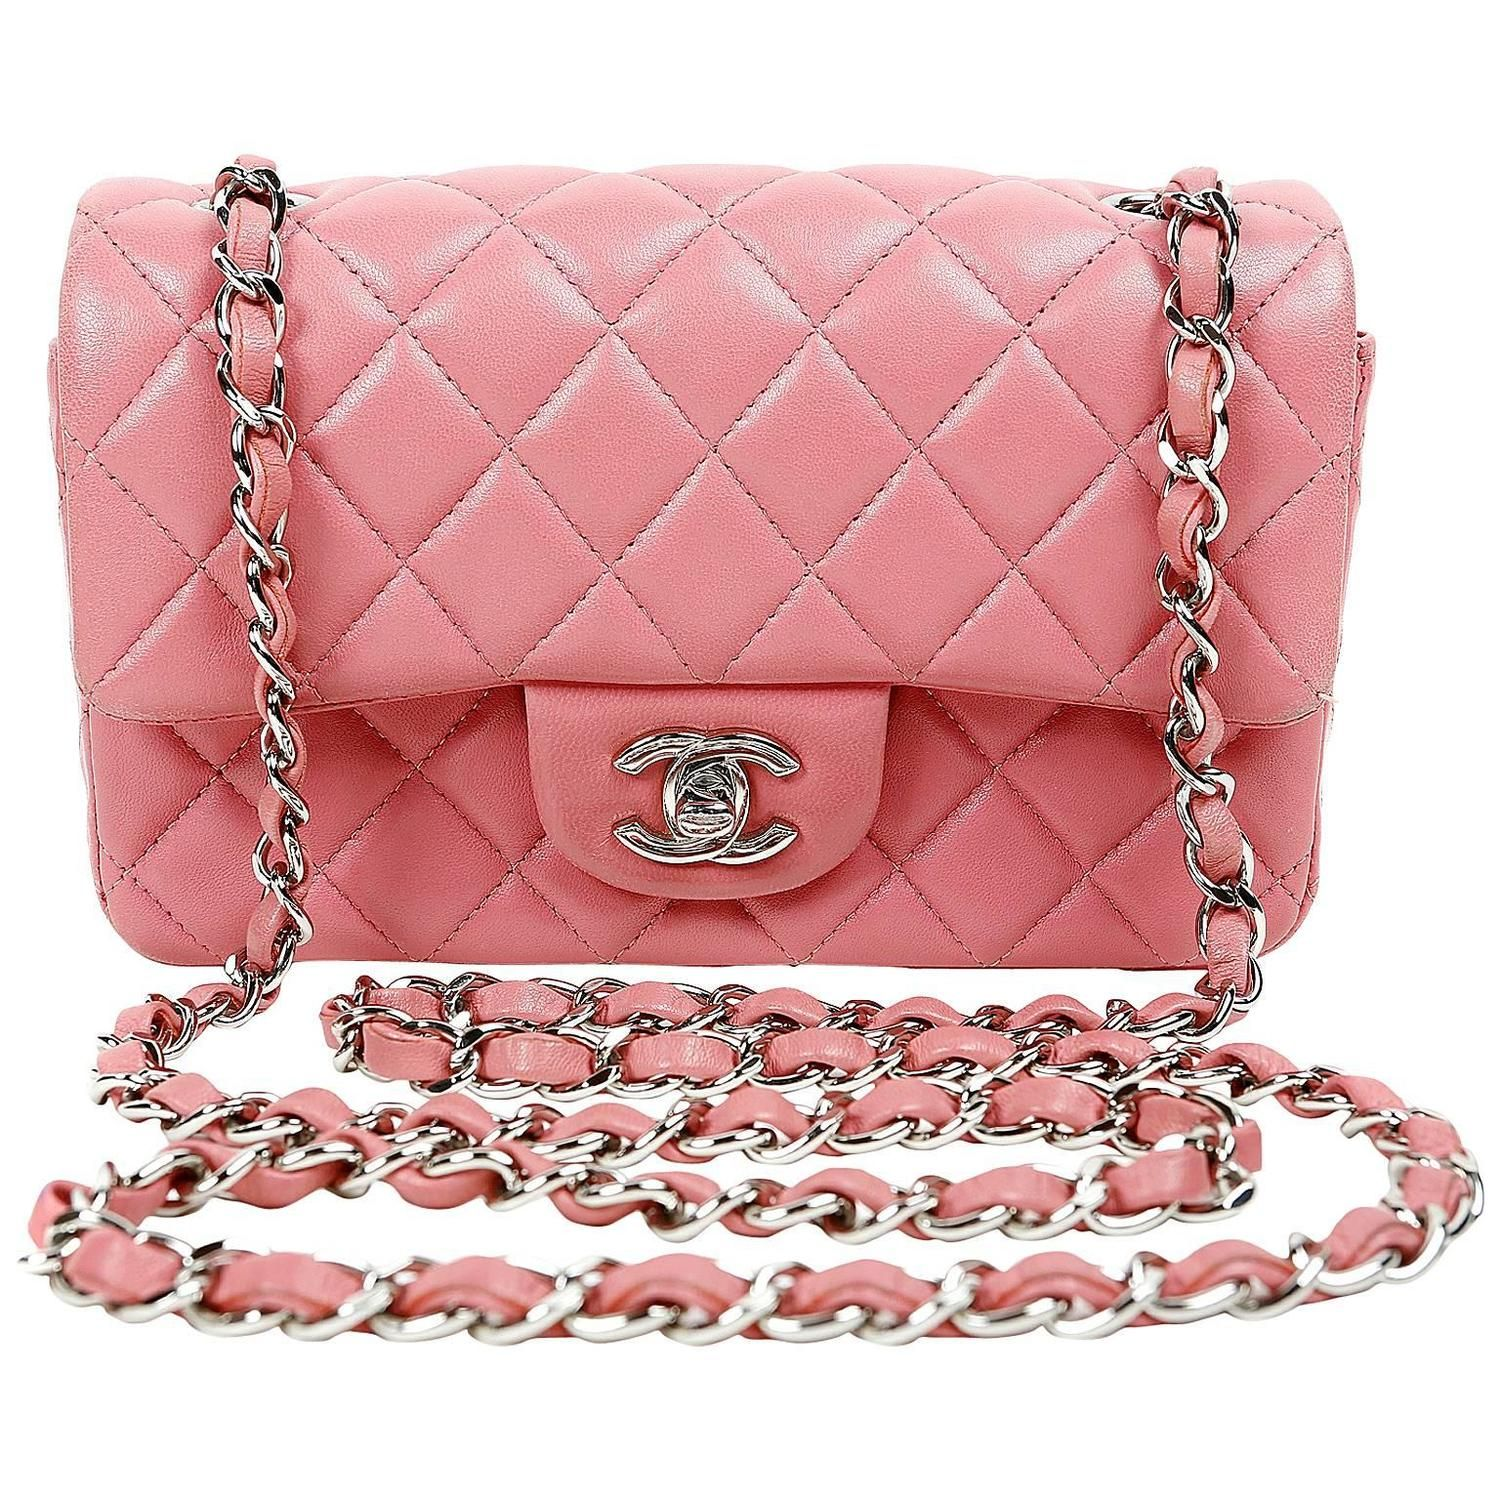 22bc5afe5 View this item and discover similar shoulder bags for sale at - Chanel  Raspberry Lambskin Small Classic Flap- PRISTINE A lovely shade of luscious  berry ...